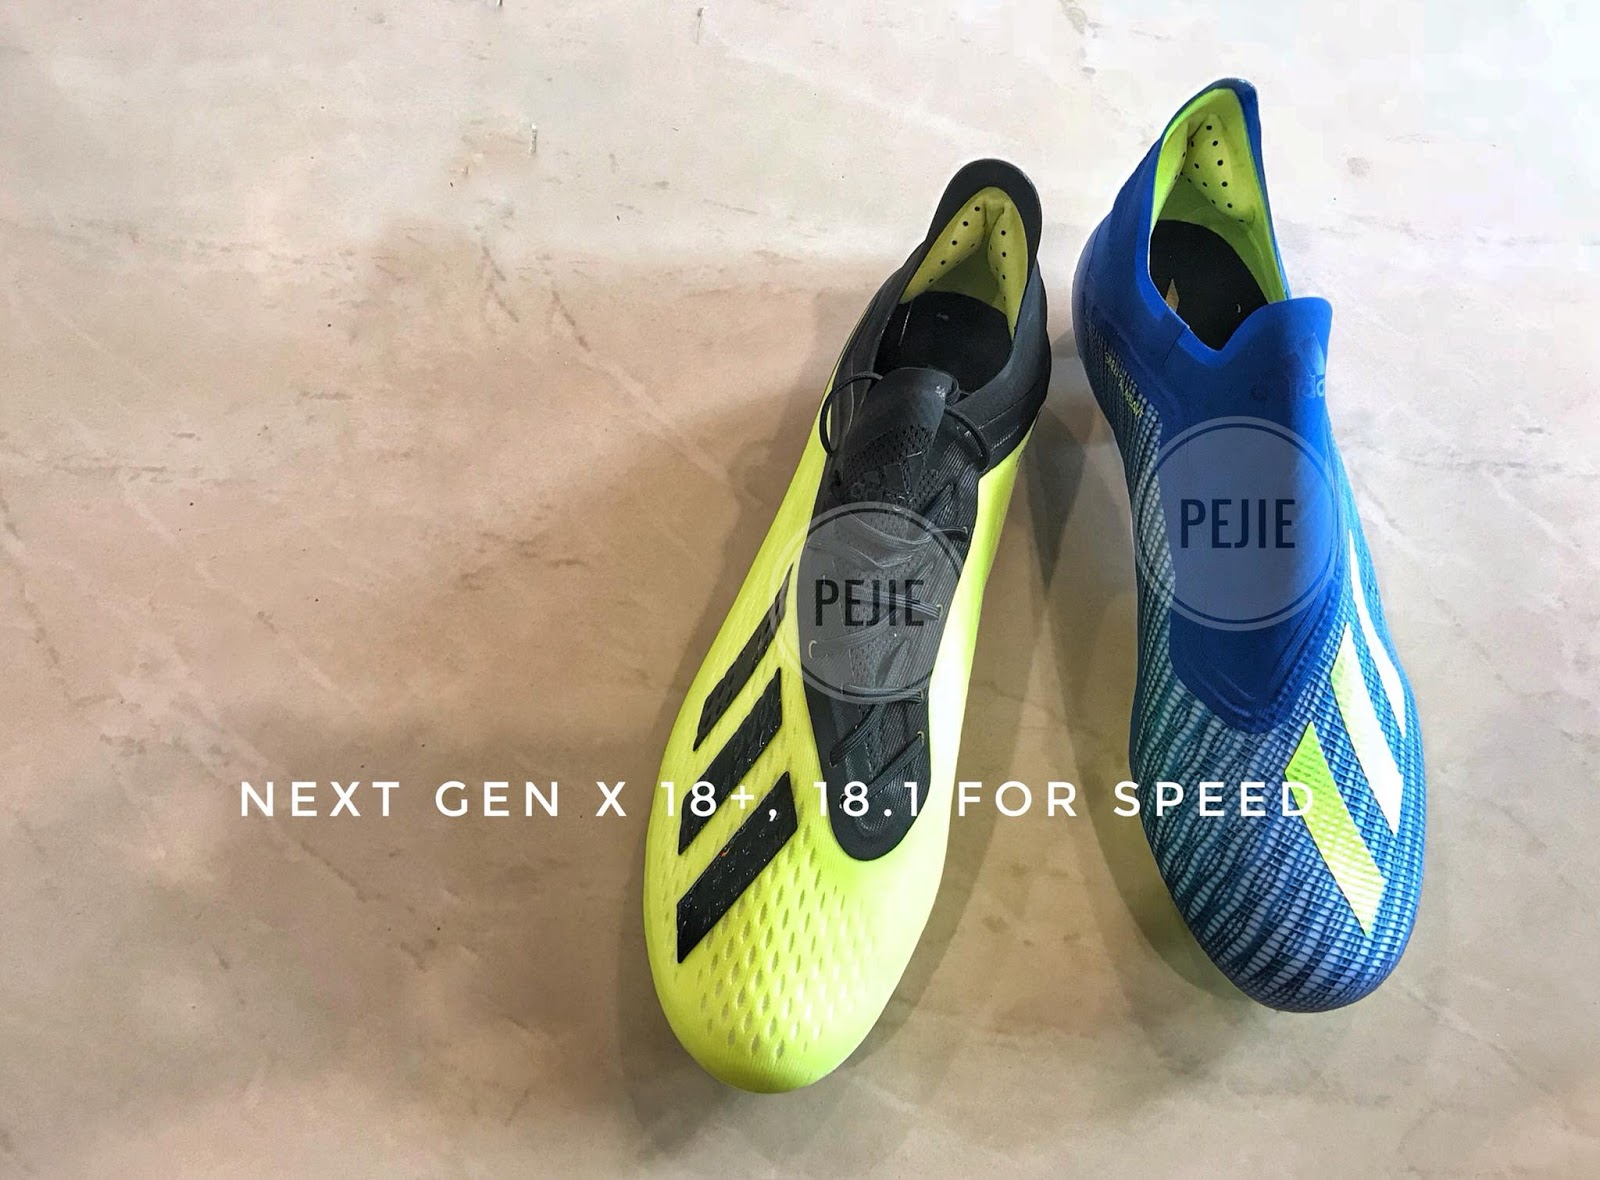 60fe711309d6 The release of the next-generation Adidas X football boot is just a few  days away. Now thanks to Malaysian boot experts sporthome14